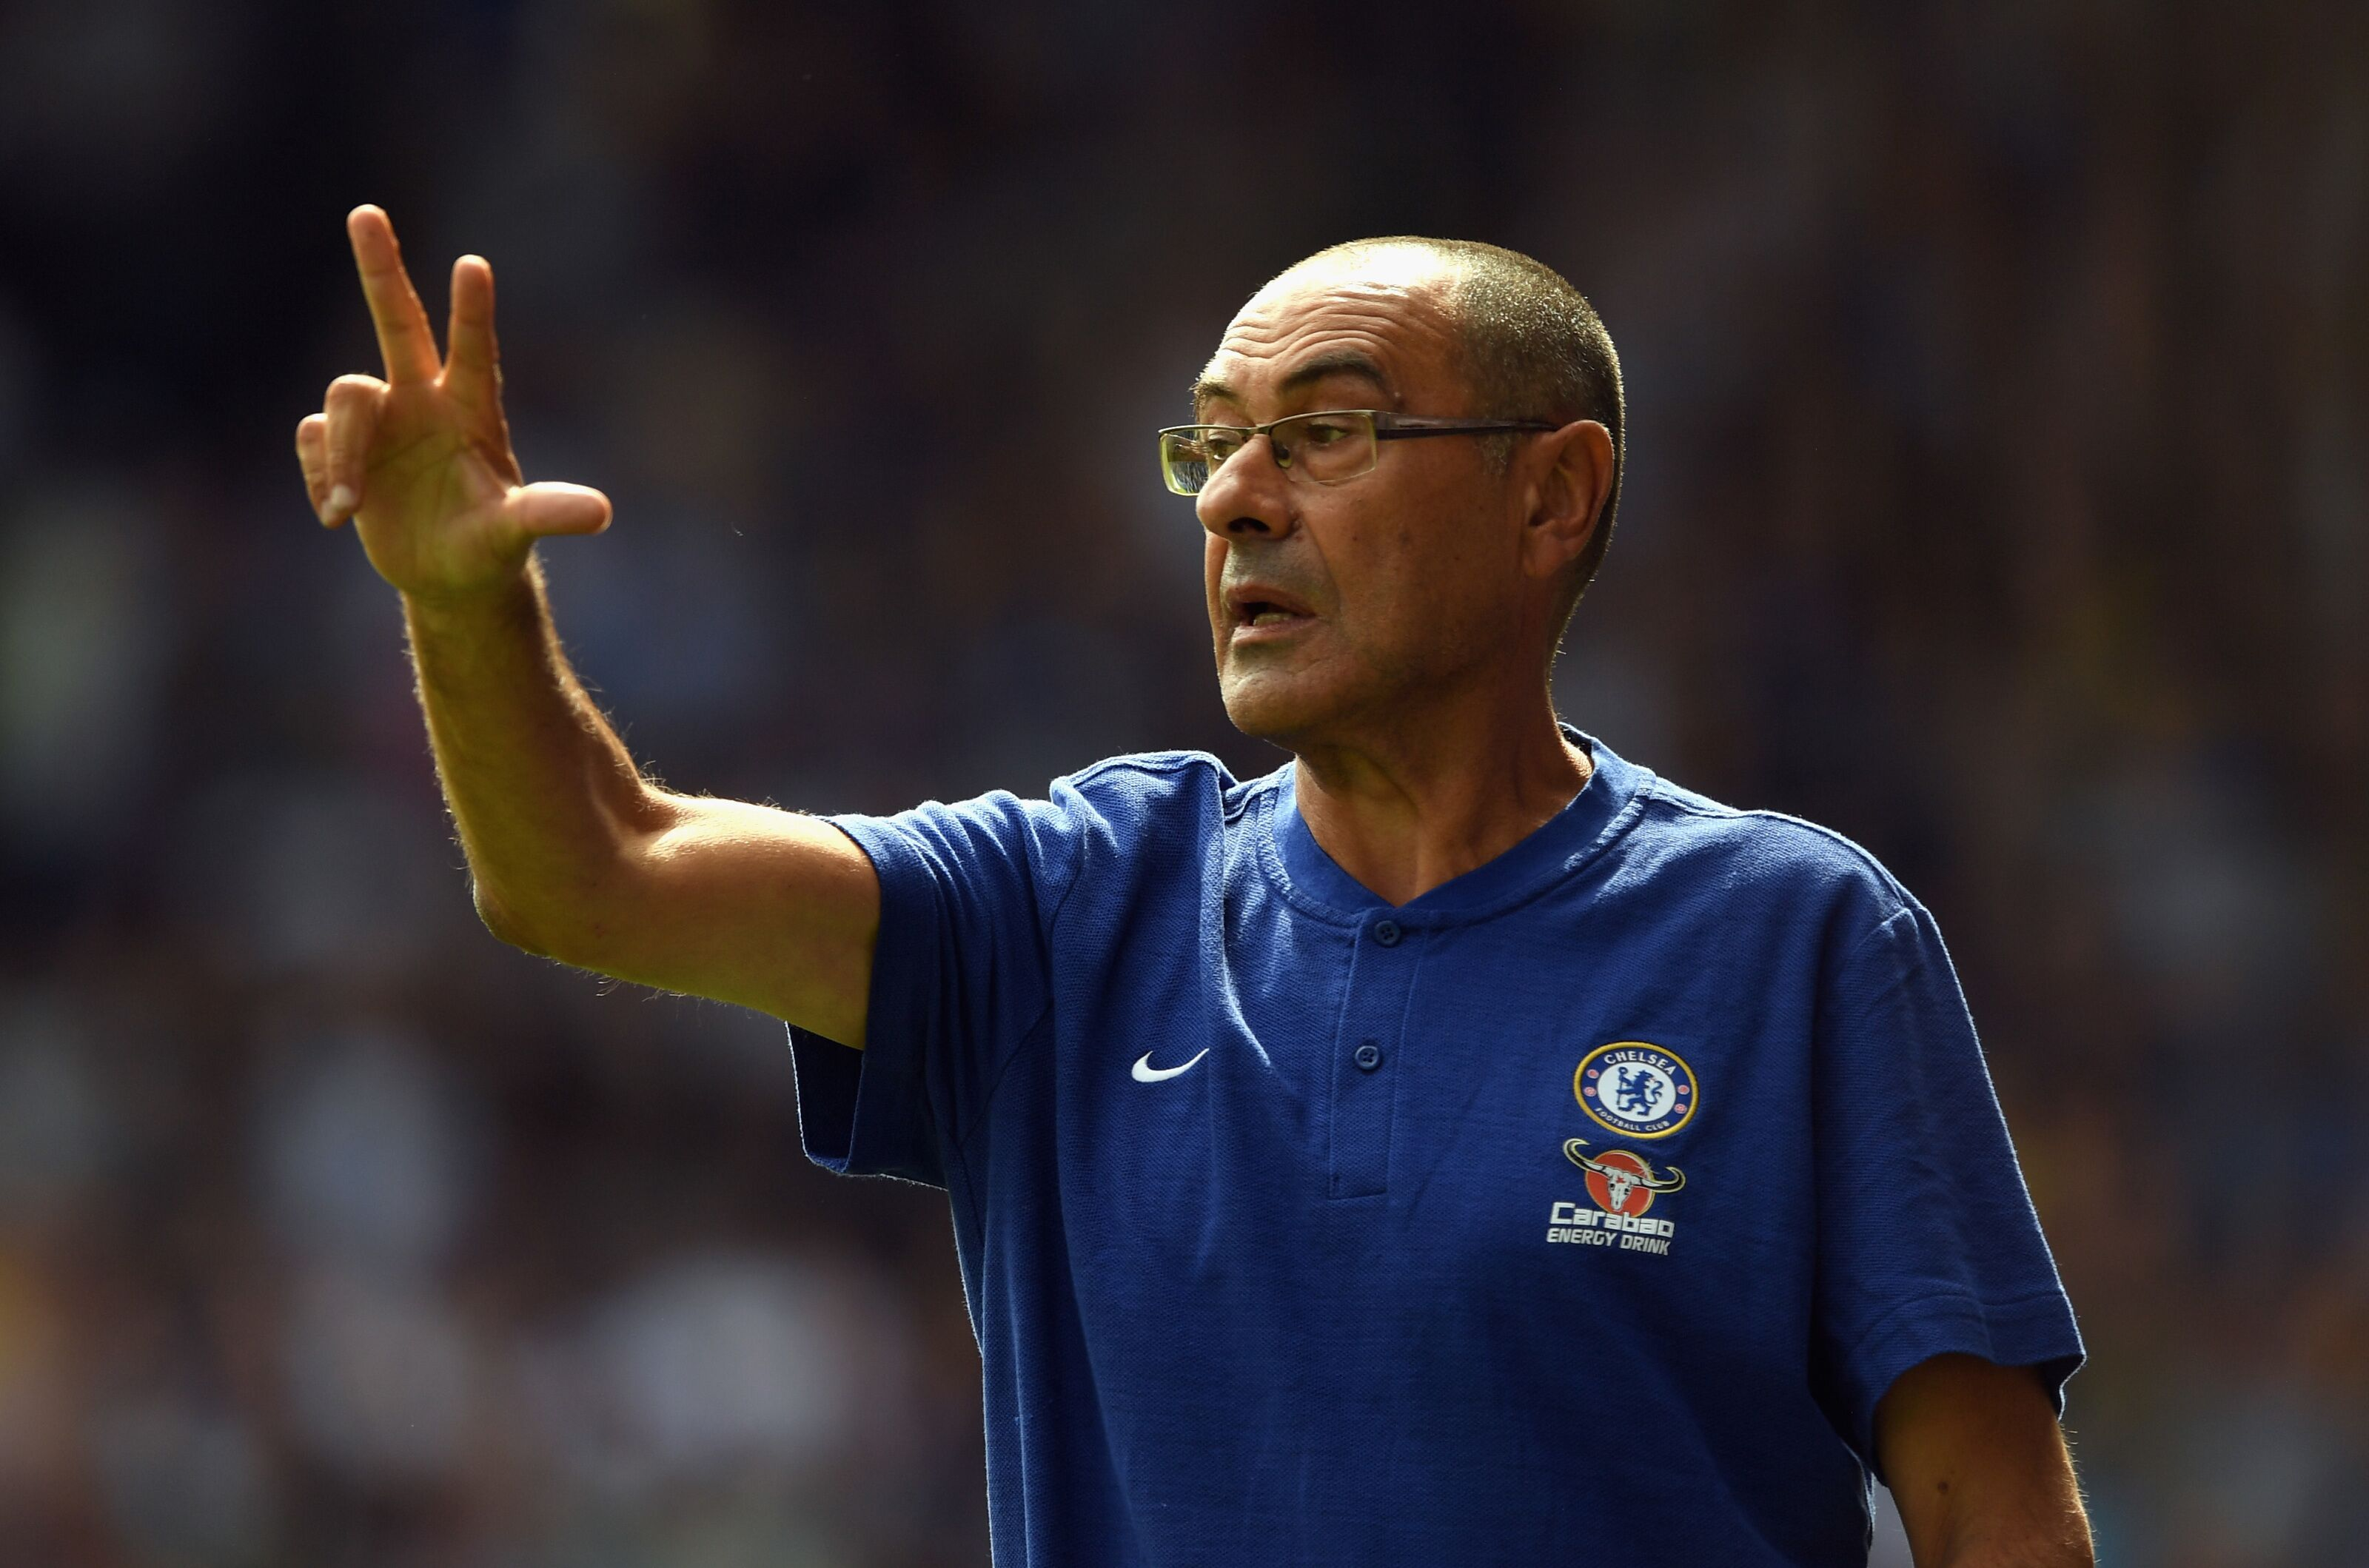 Stability for Chelsea with Maurizio Sarri but not others is a non sequitur